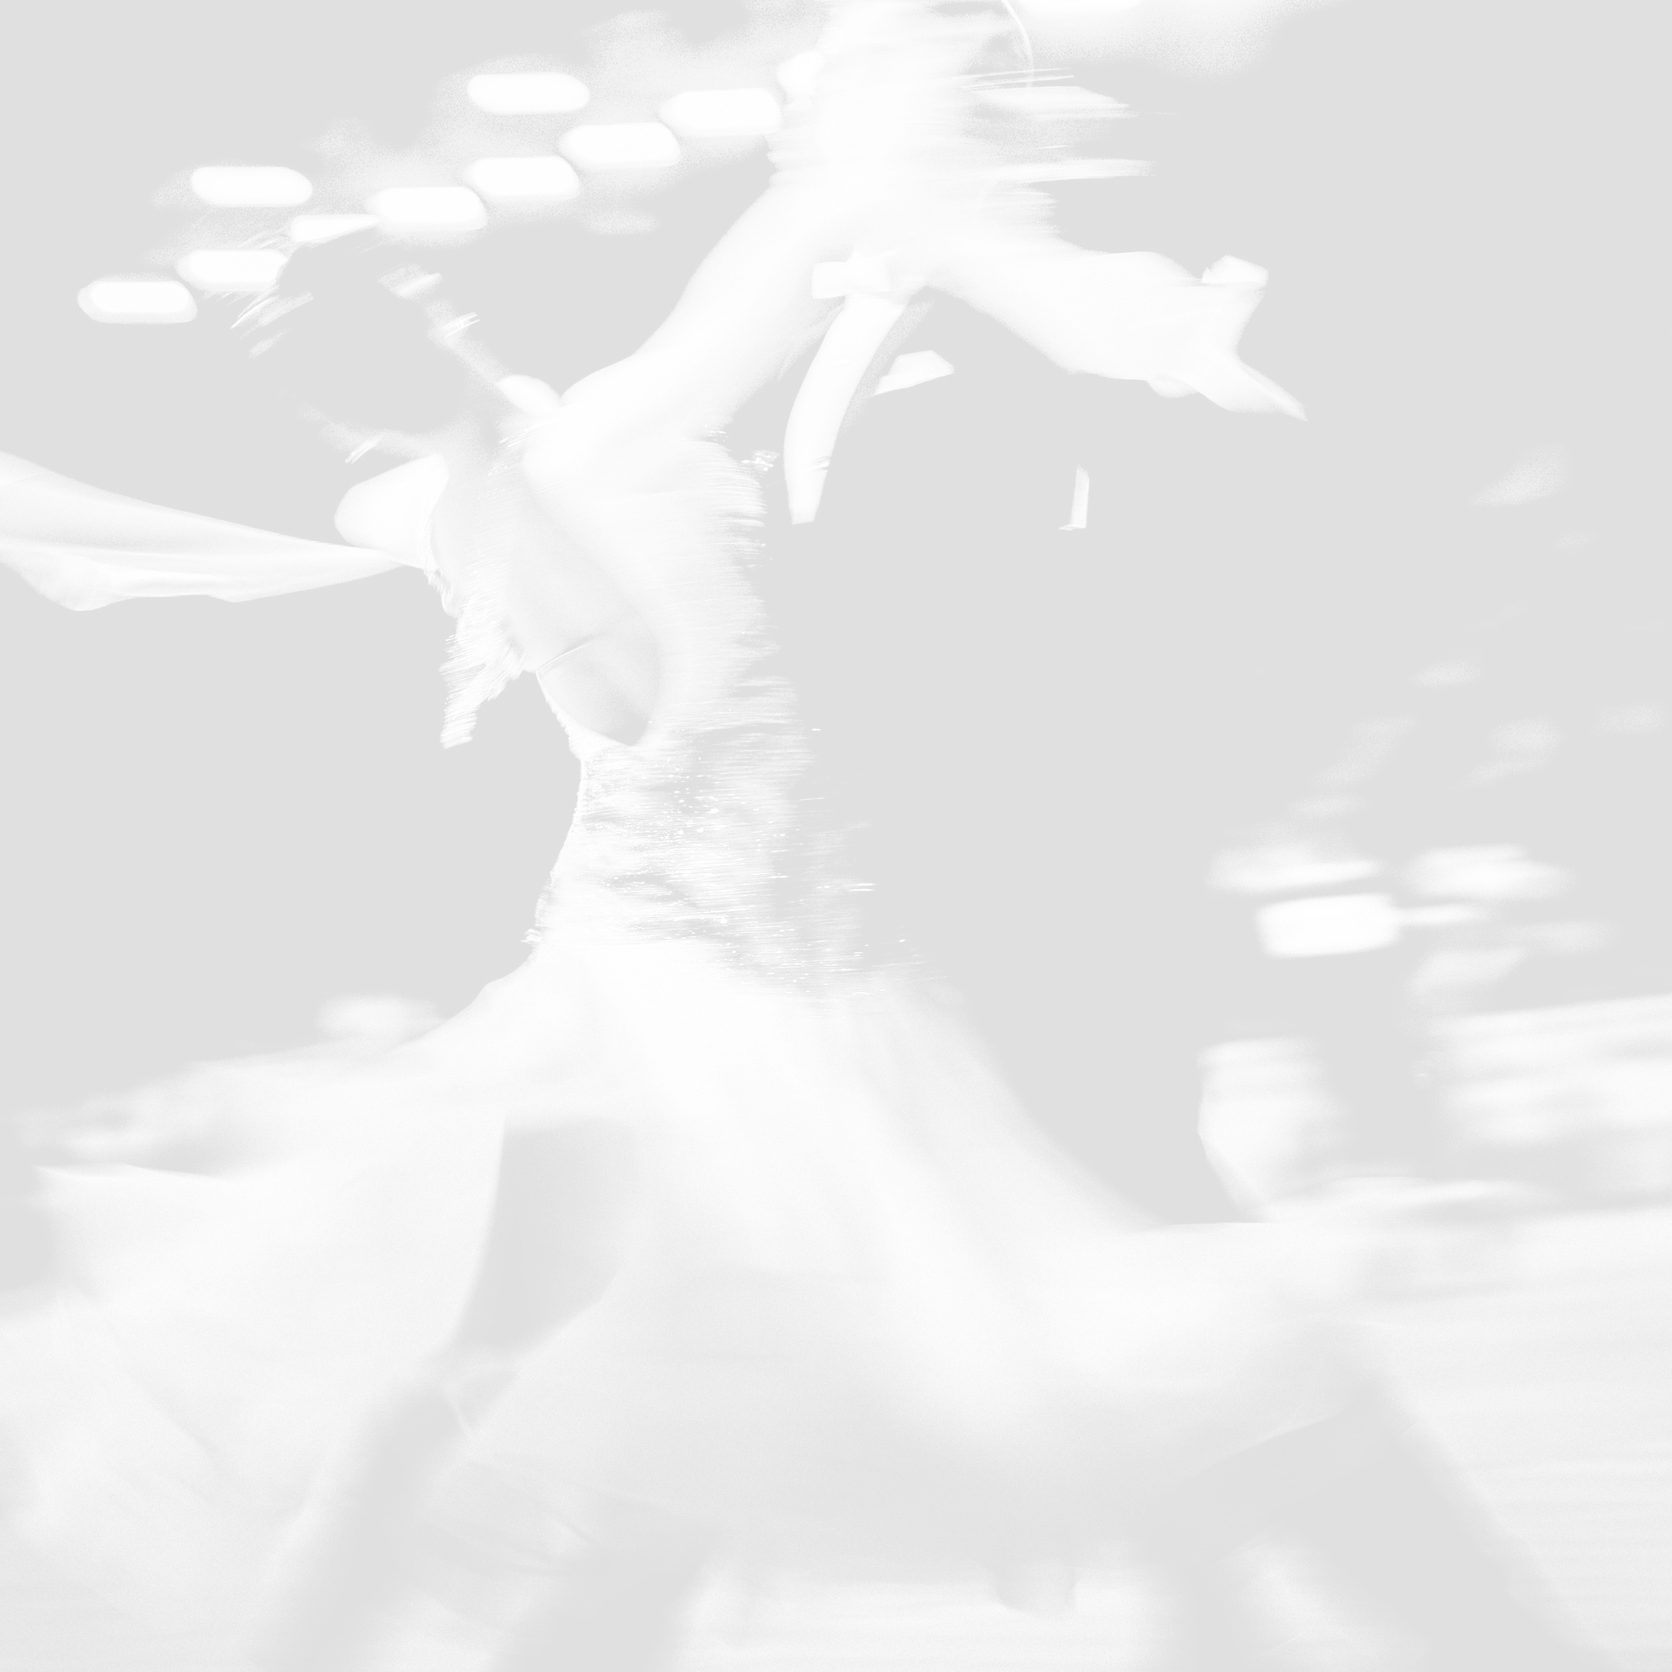 76368791 - blurred couple dancers competition in ballroom dancing. black and white image